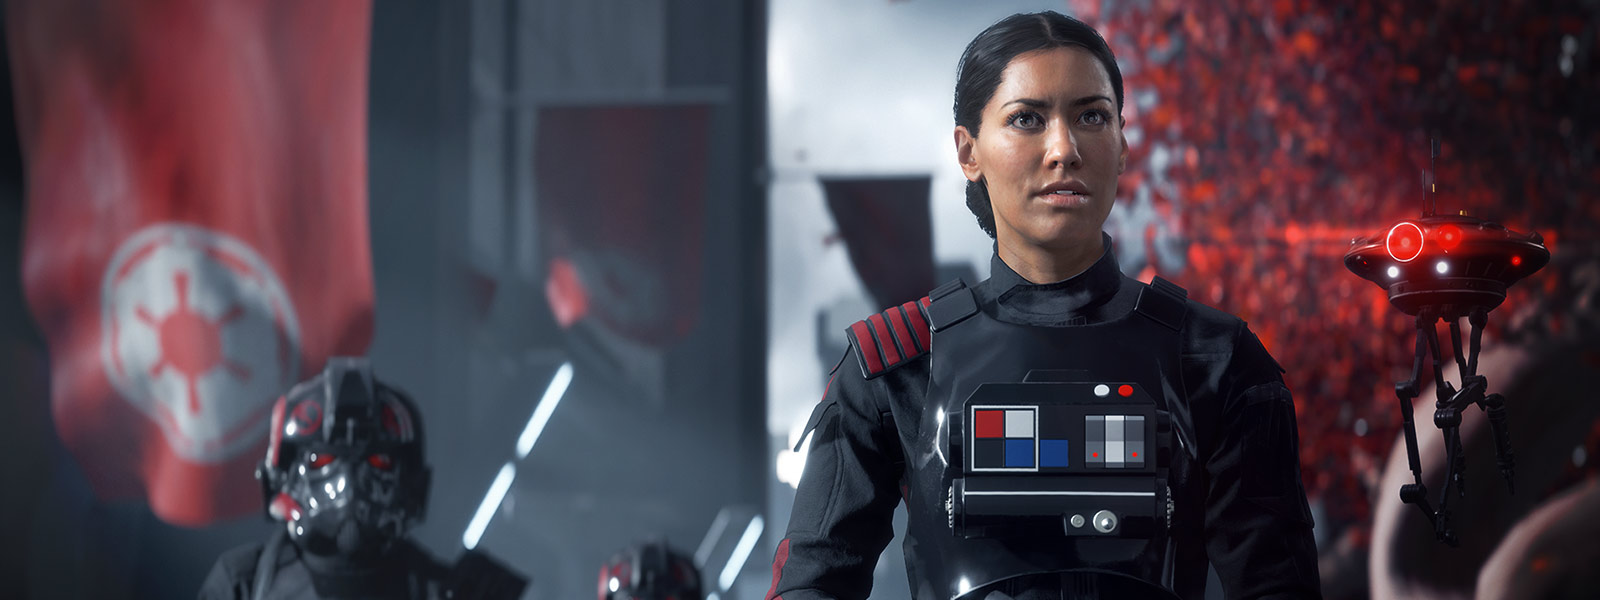 Front view of Iden Versio standing outside with her drone hovering next to her